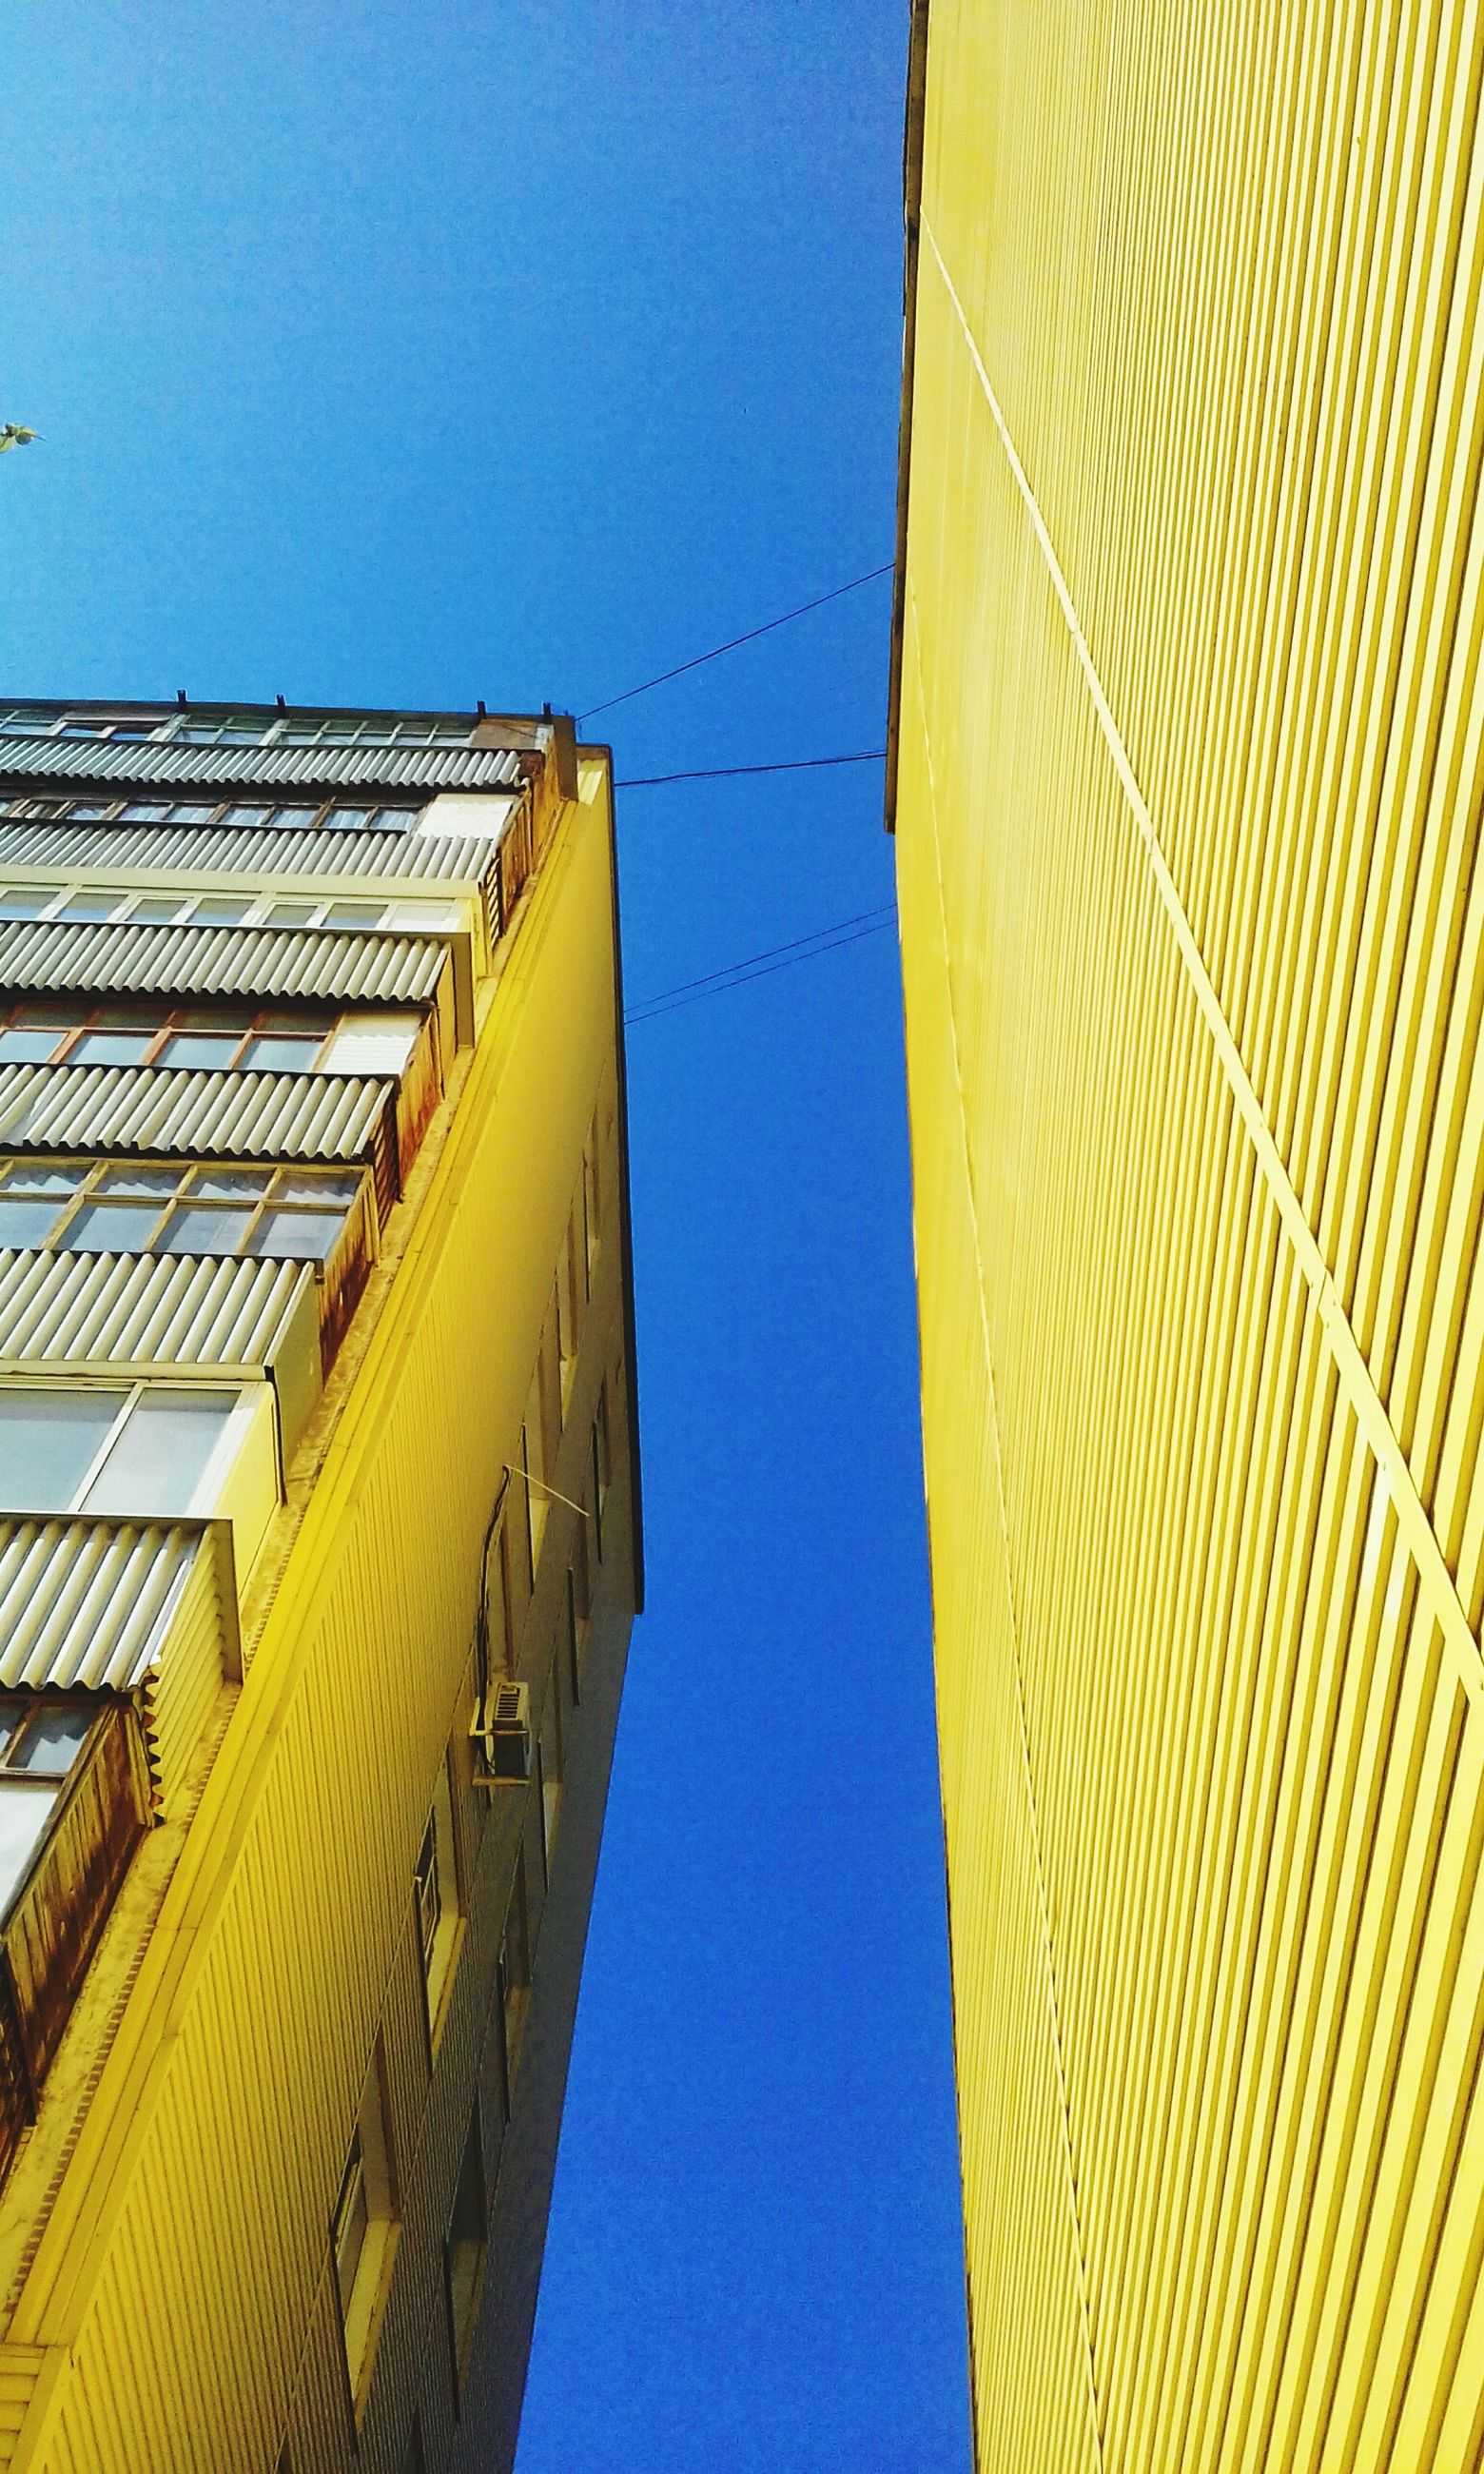 clear sky, architecture, low angle view, building exterior, built structure, blue, copy space, yellow, pattern, roof, building, outdoors, day, high section, no people, sunlight, part of, in a row, city, design